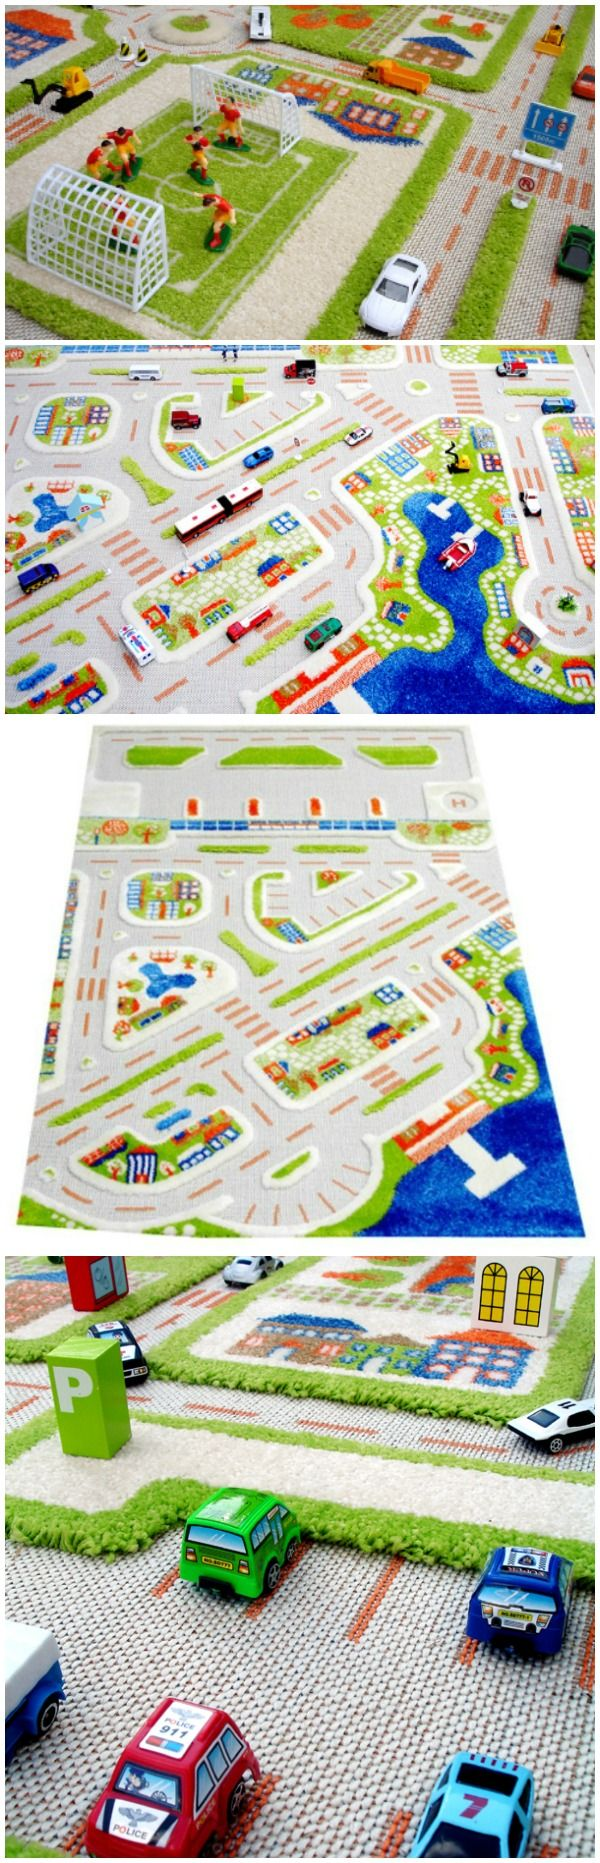 The 3D Play Carpet includes an airport with parking lots, runways, ocean and port and a bus stop. With a fun rug like this, who needs battery operated toys?